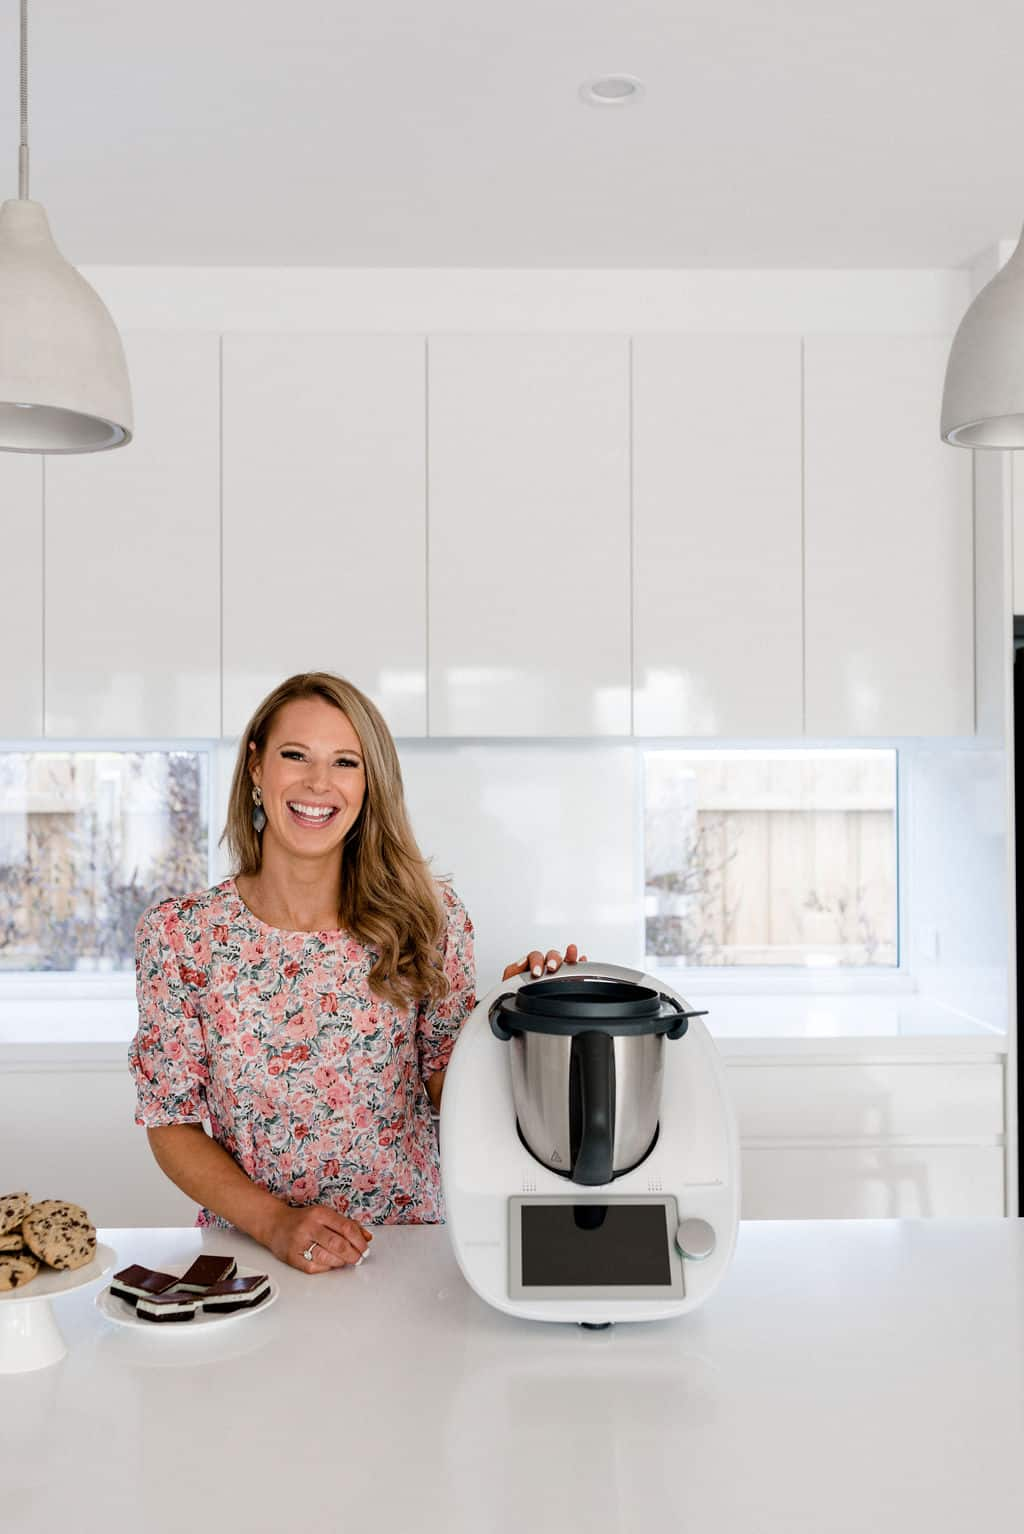 A female standing beside a Thermomix machine in a pink floral dress.